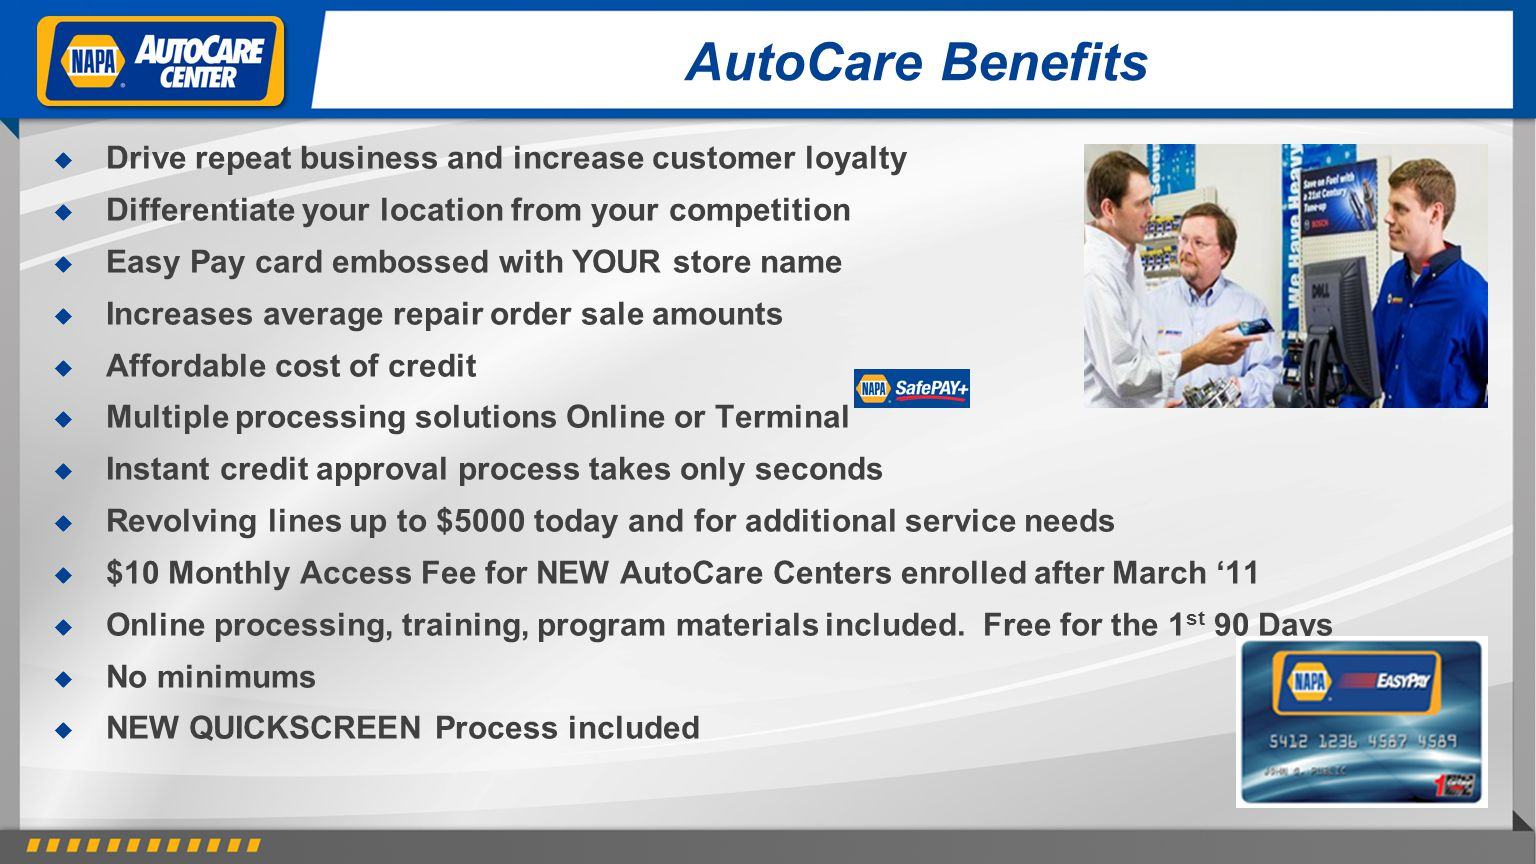 AutoCare Benefits Drive repeat business and increase customer loyalty Differentiate your location from your competition Easy Pay card embossed with YOUR store name Increases average repair order sale amounts Affordable cost of credit Multiple processing solutions Online or Terminal Instant credit approval process takes only seconds Revolving lines up to $5000 today and for additional service needs $10 Monthly Access Fee for NEW AutoCare Centers enrolled after March 11 Online processing, training, program materials included.